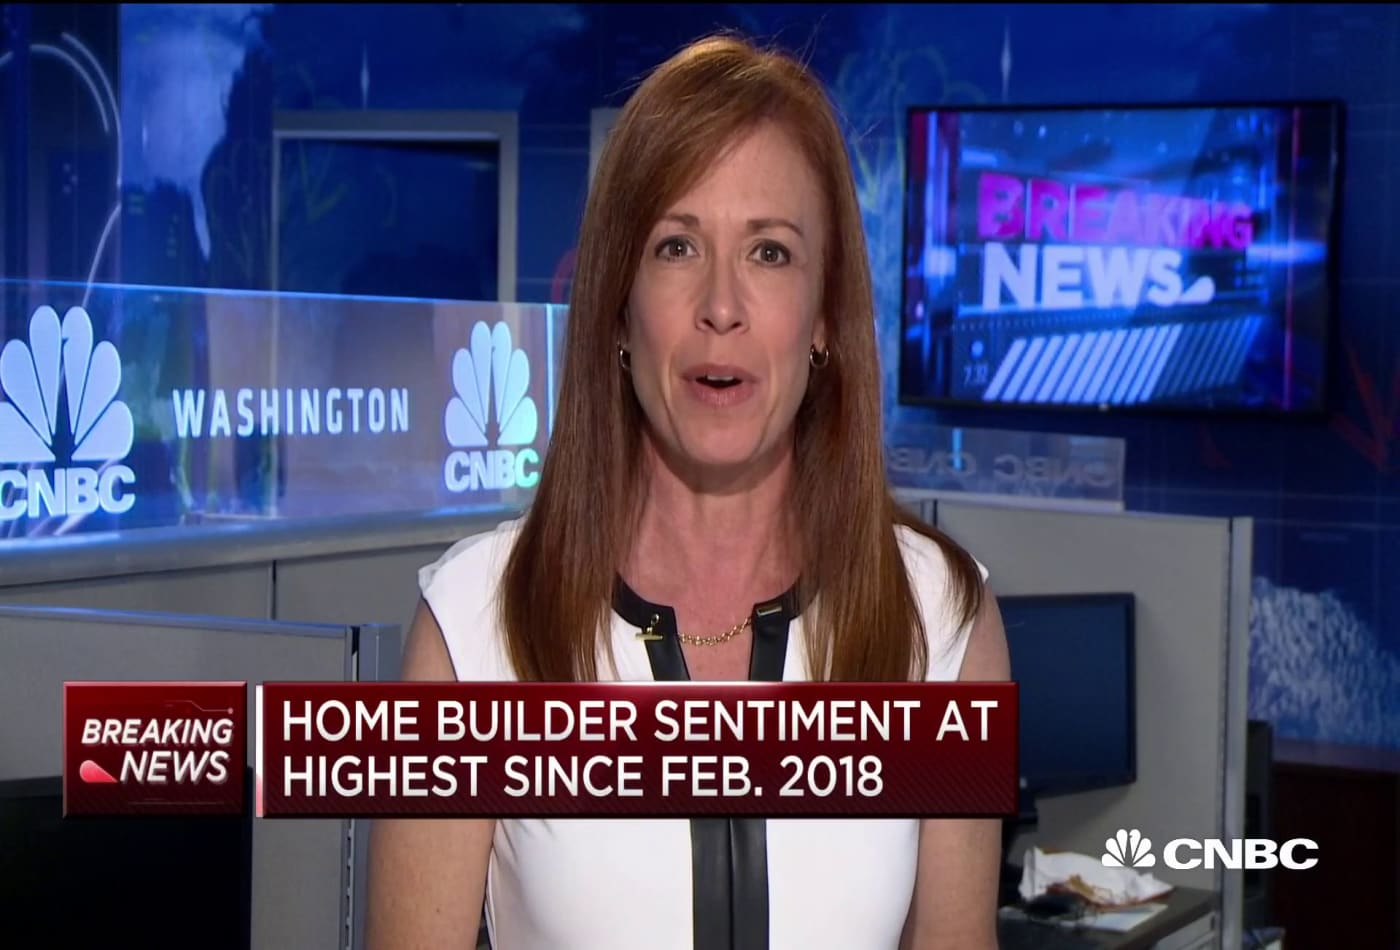 Home builder sentiment at highest level since February 2018